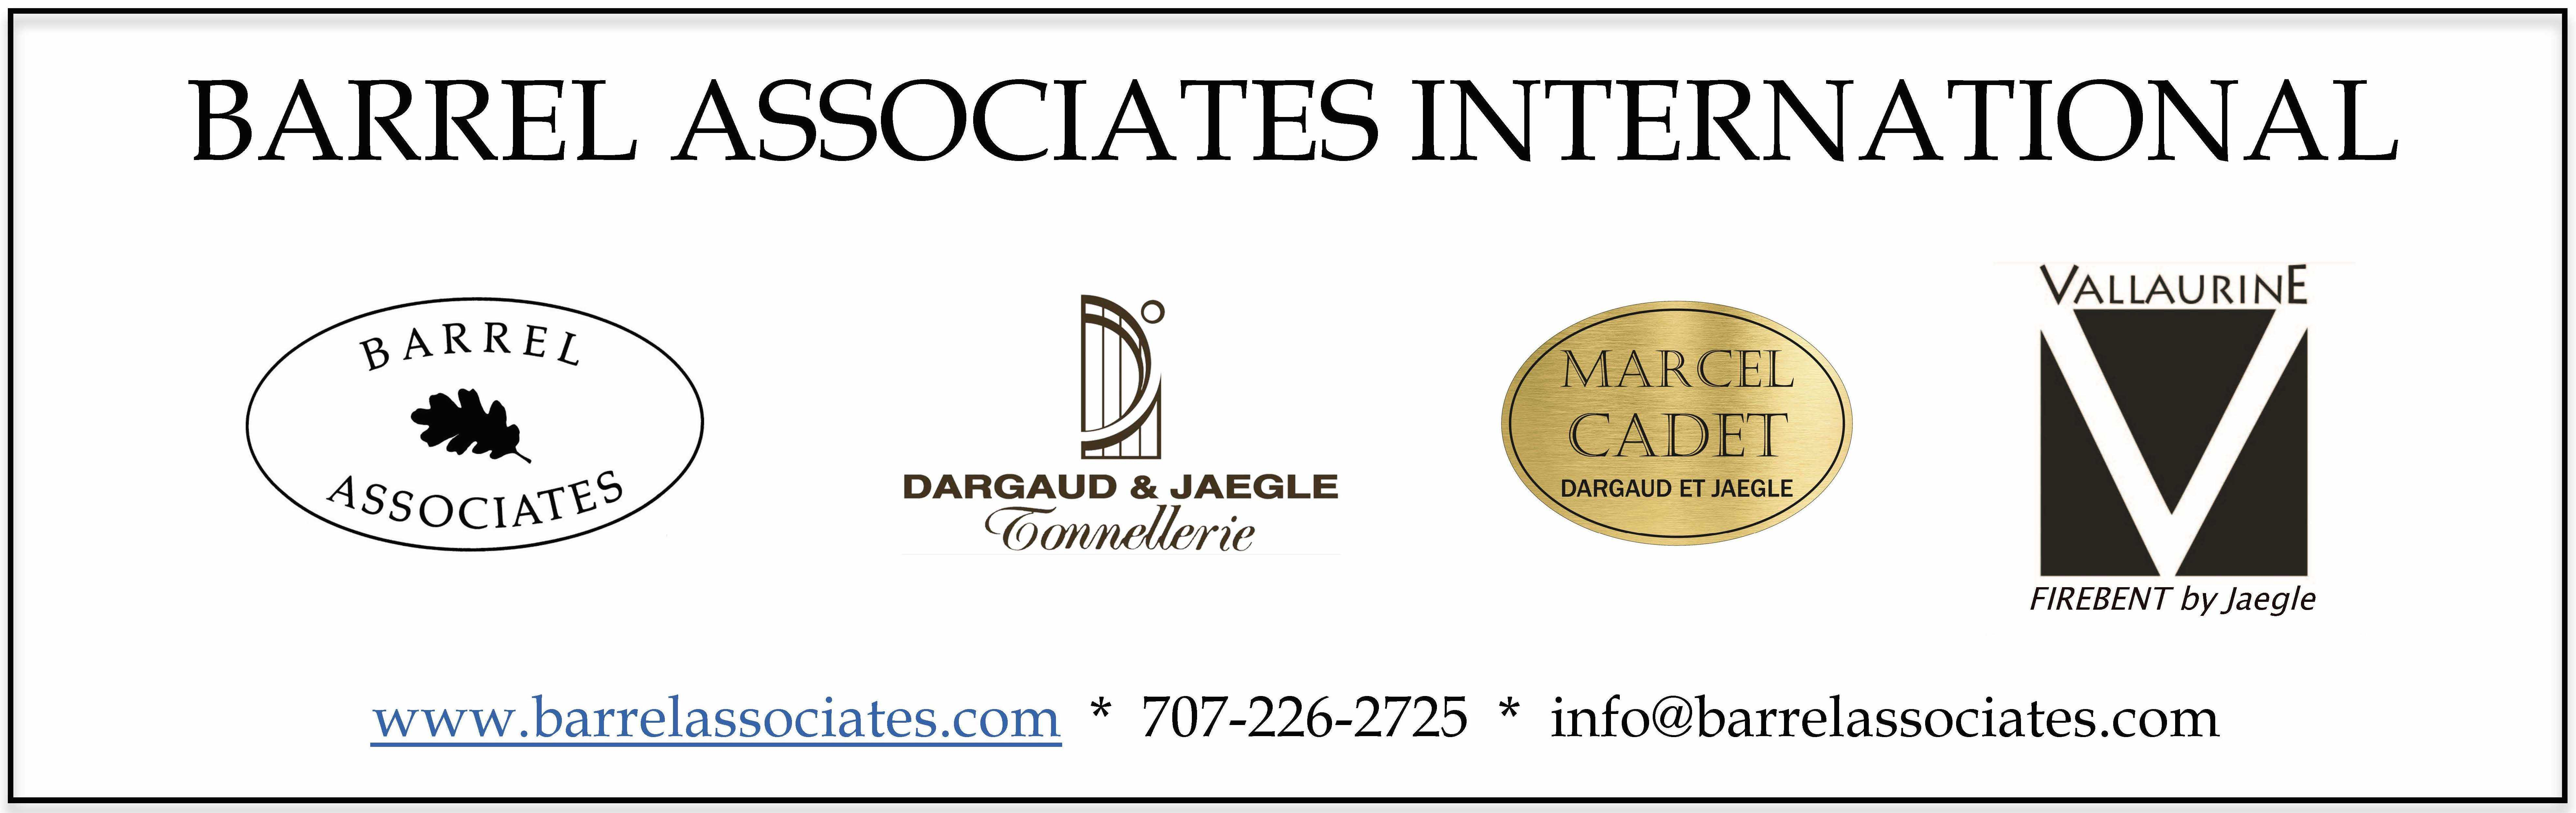 Barrel Associates International